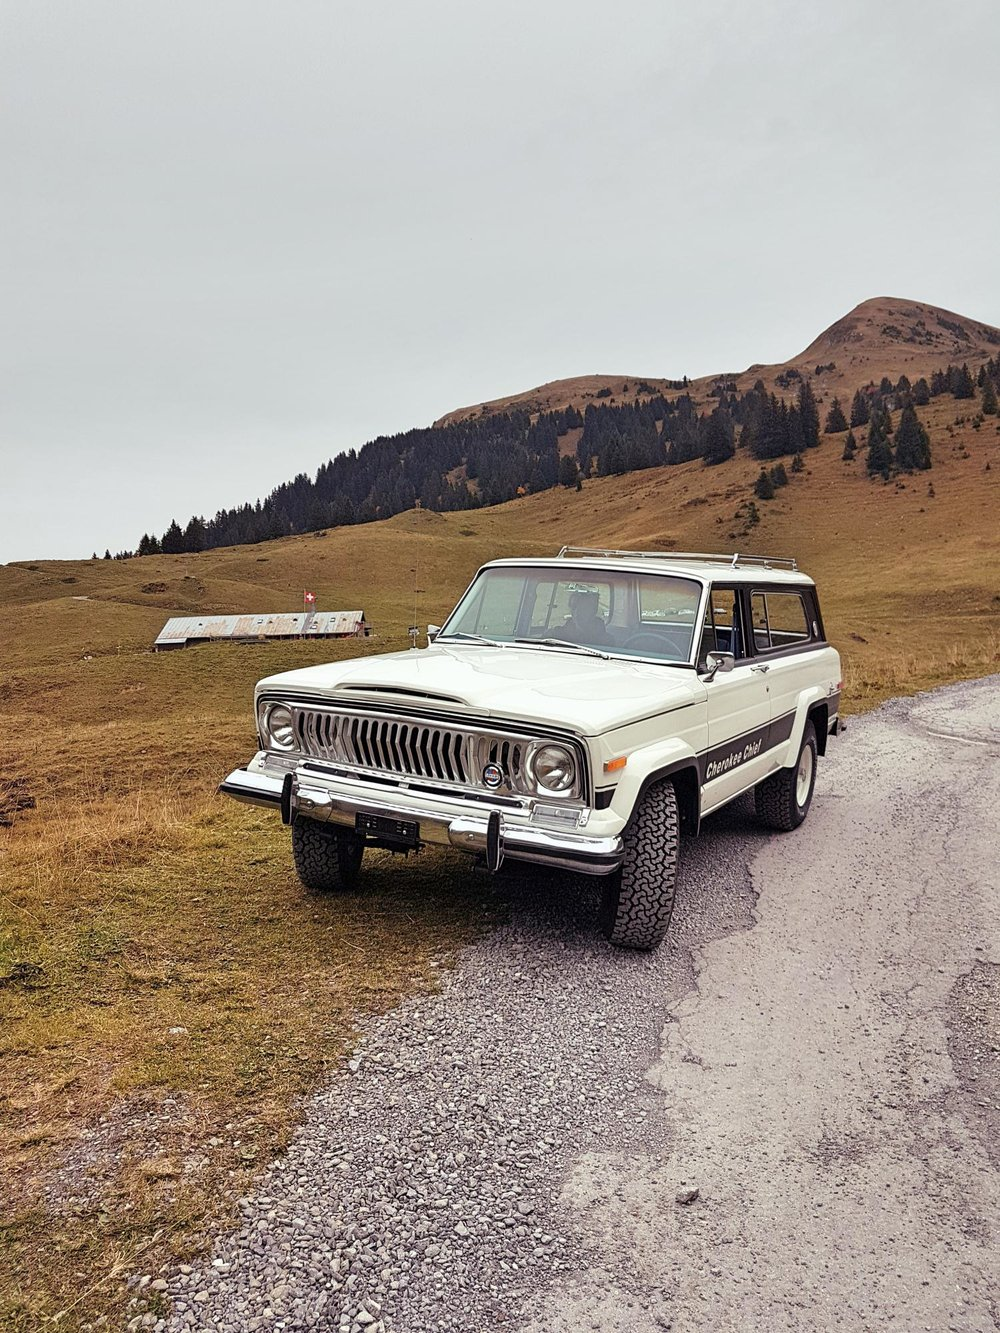 jeep-cherokee-chief-1978-shooting-morgins-switzerland-90.jpg